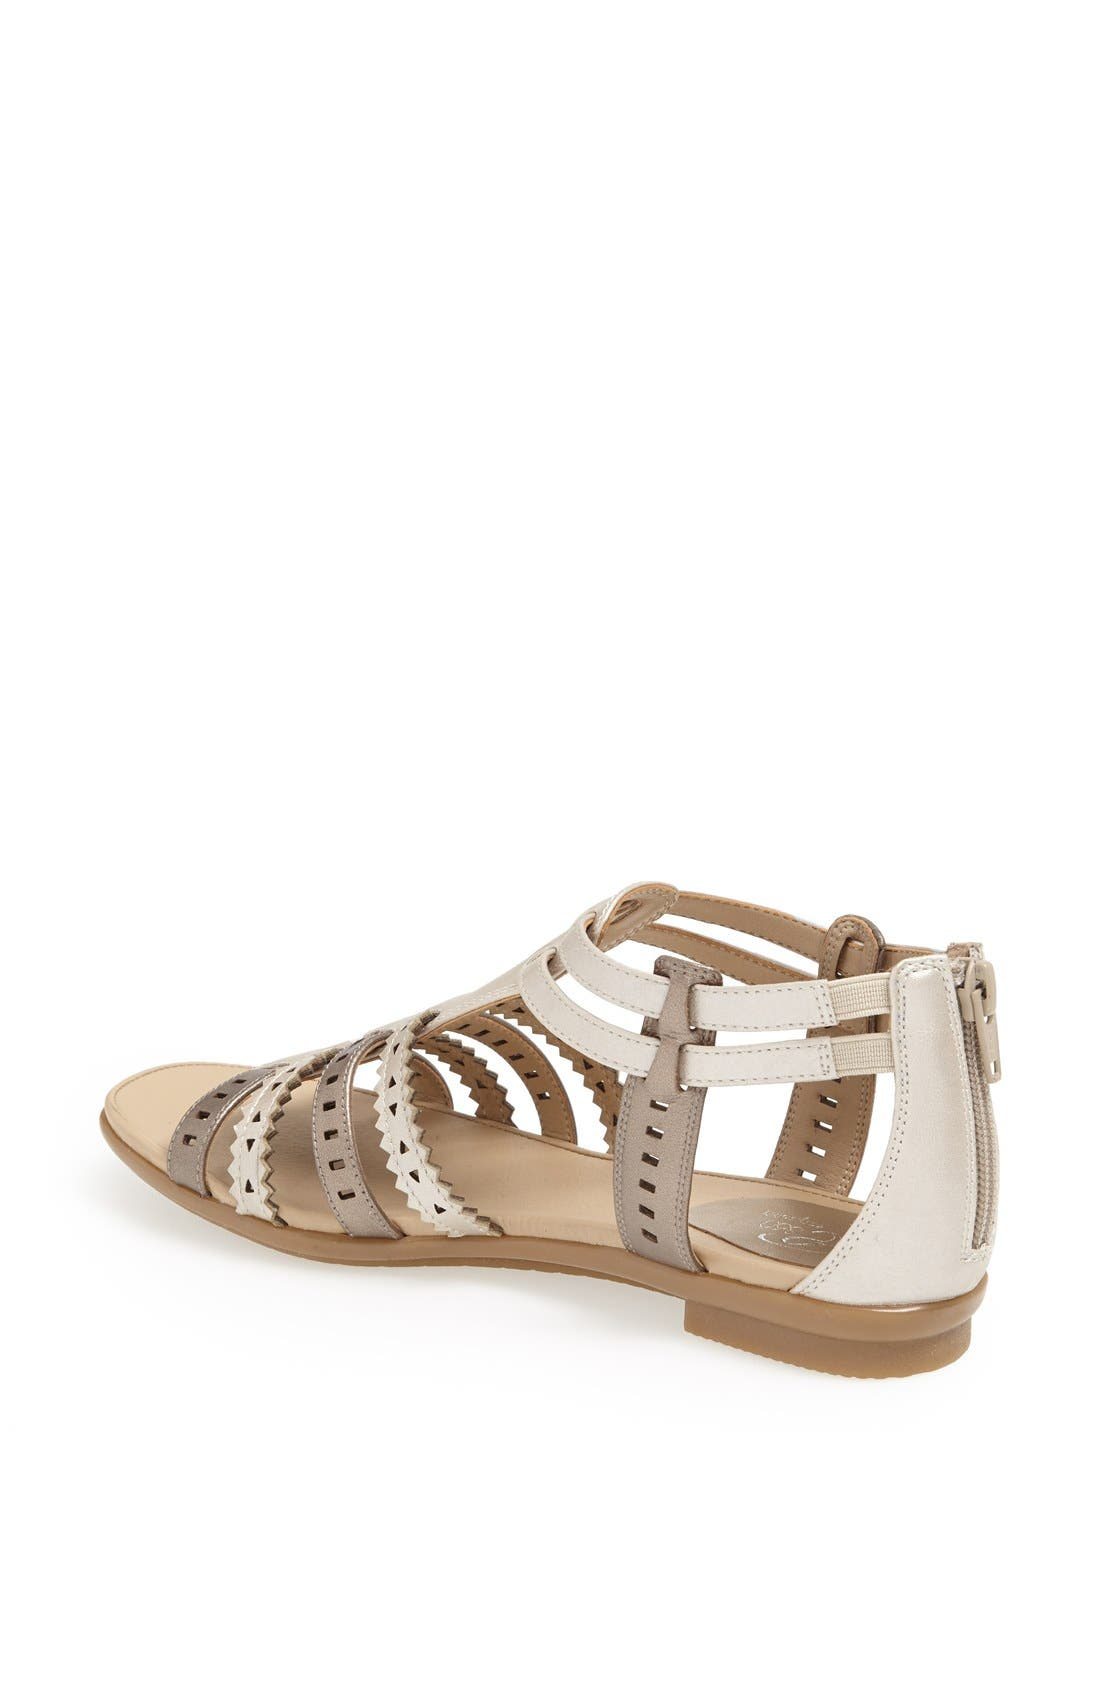 Alternate Image 2  - Easy Spirit 'e360 - Karelly' Pinked & Perforated Leather Back Zip Sandal (Women)